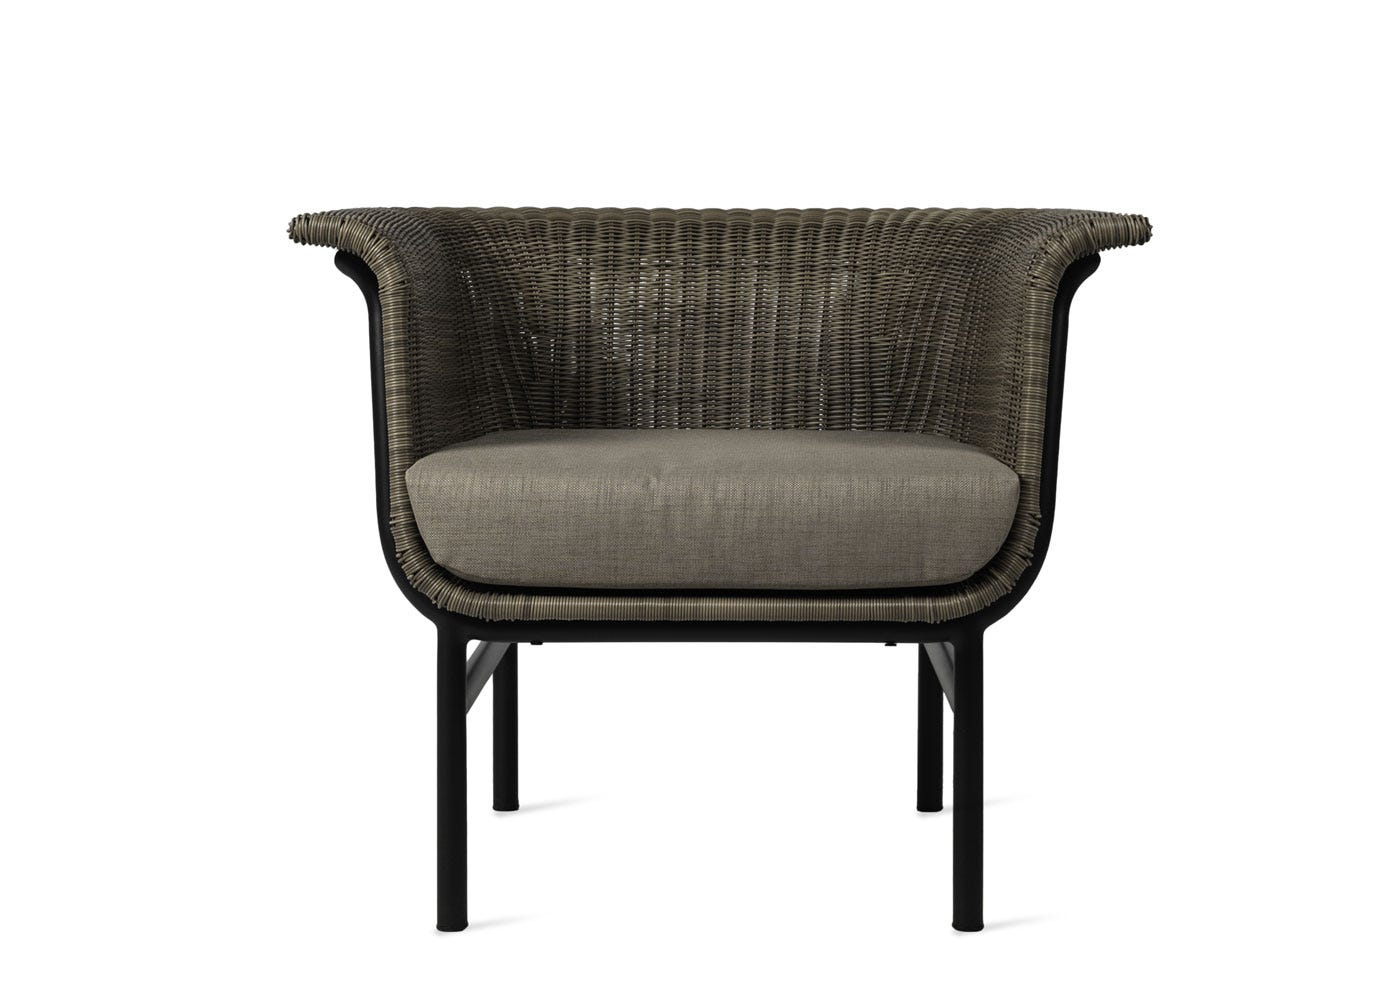 Wicked lounge chair taupe material - Front profile